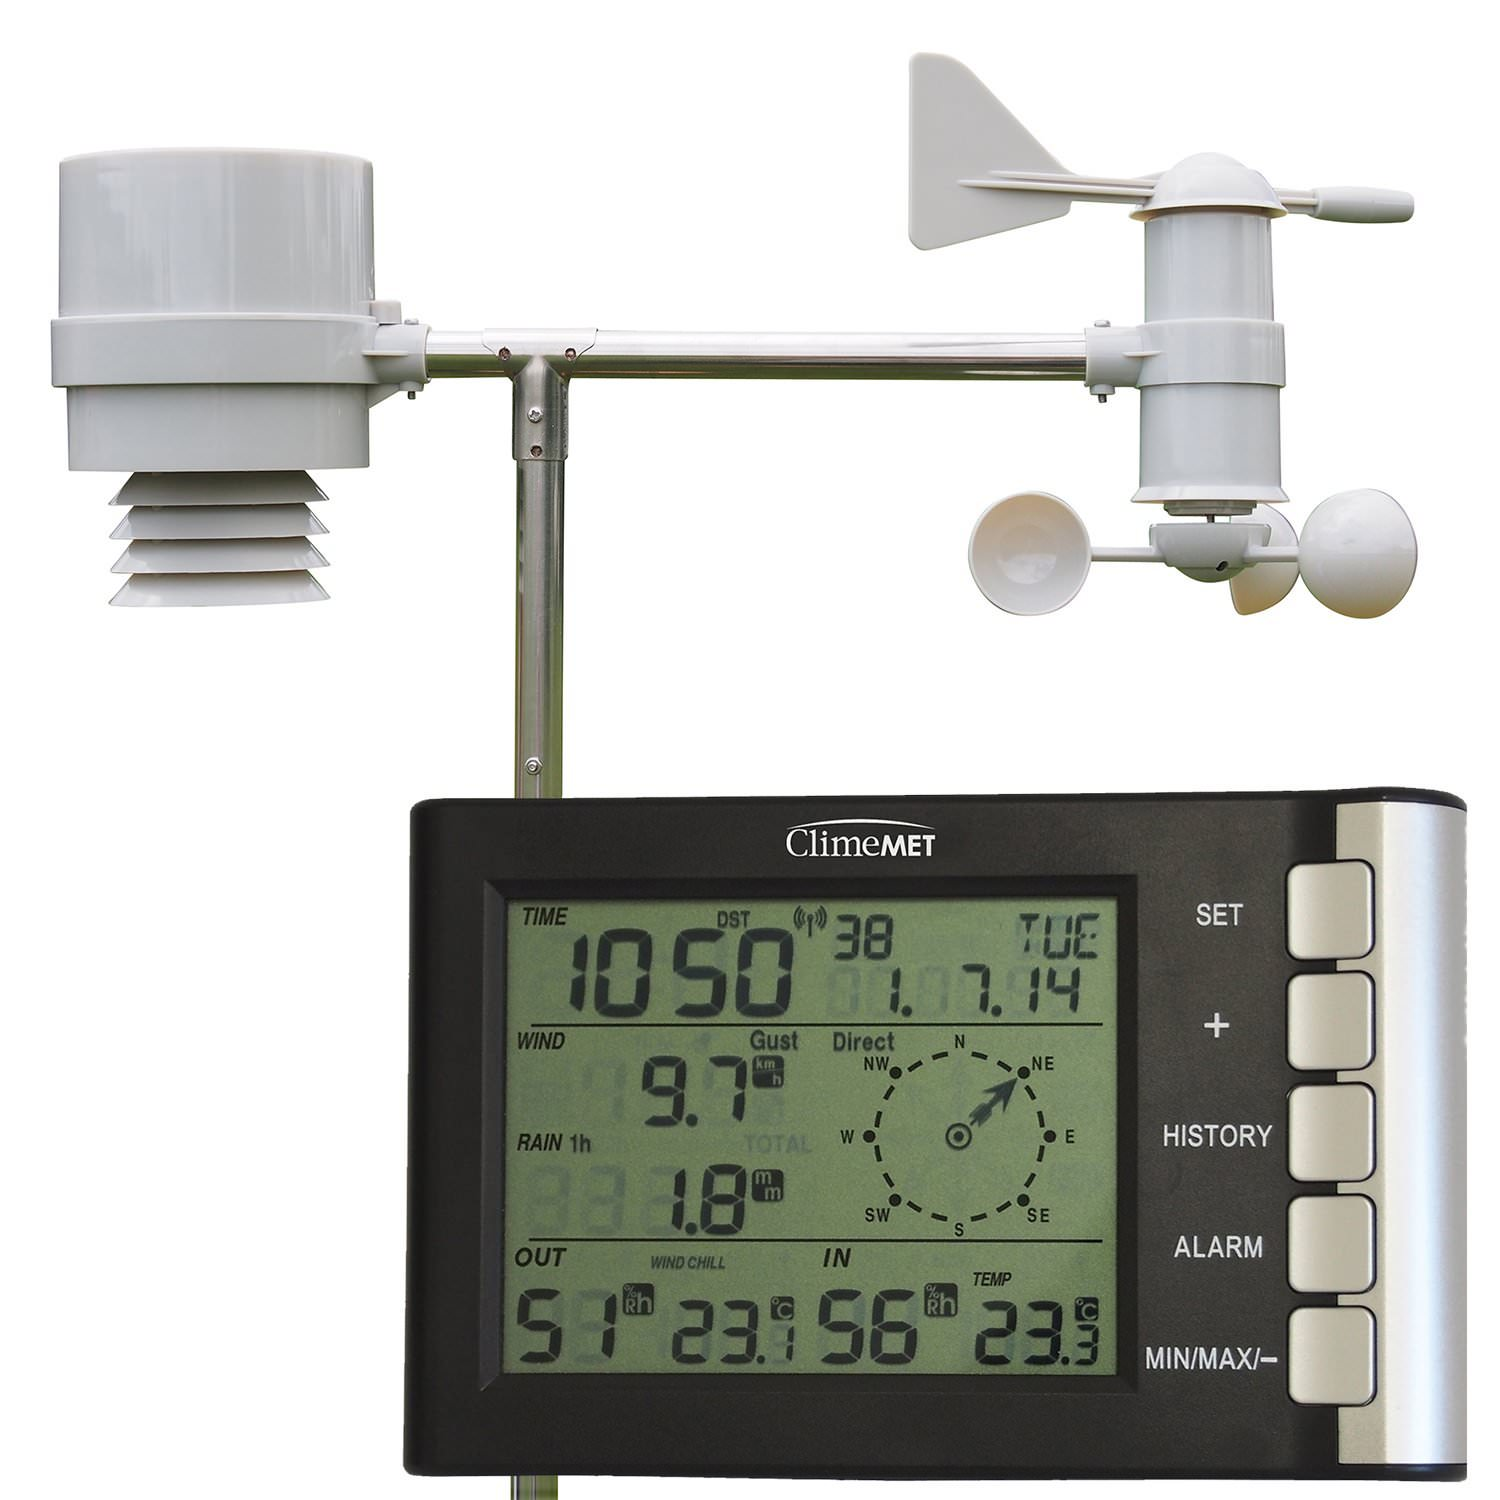 Climemet Cm2026 Home All In One Weather Station Weather